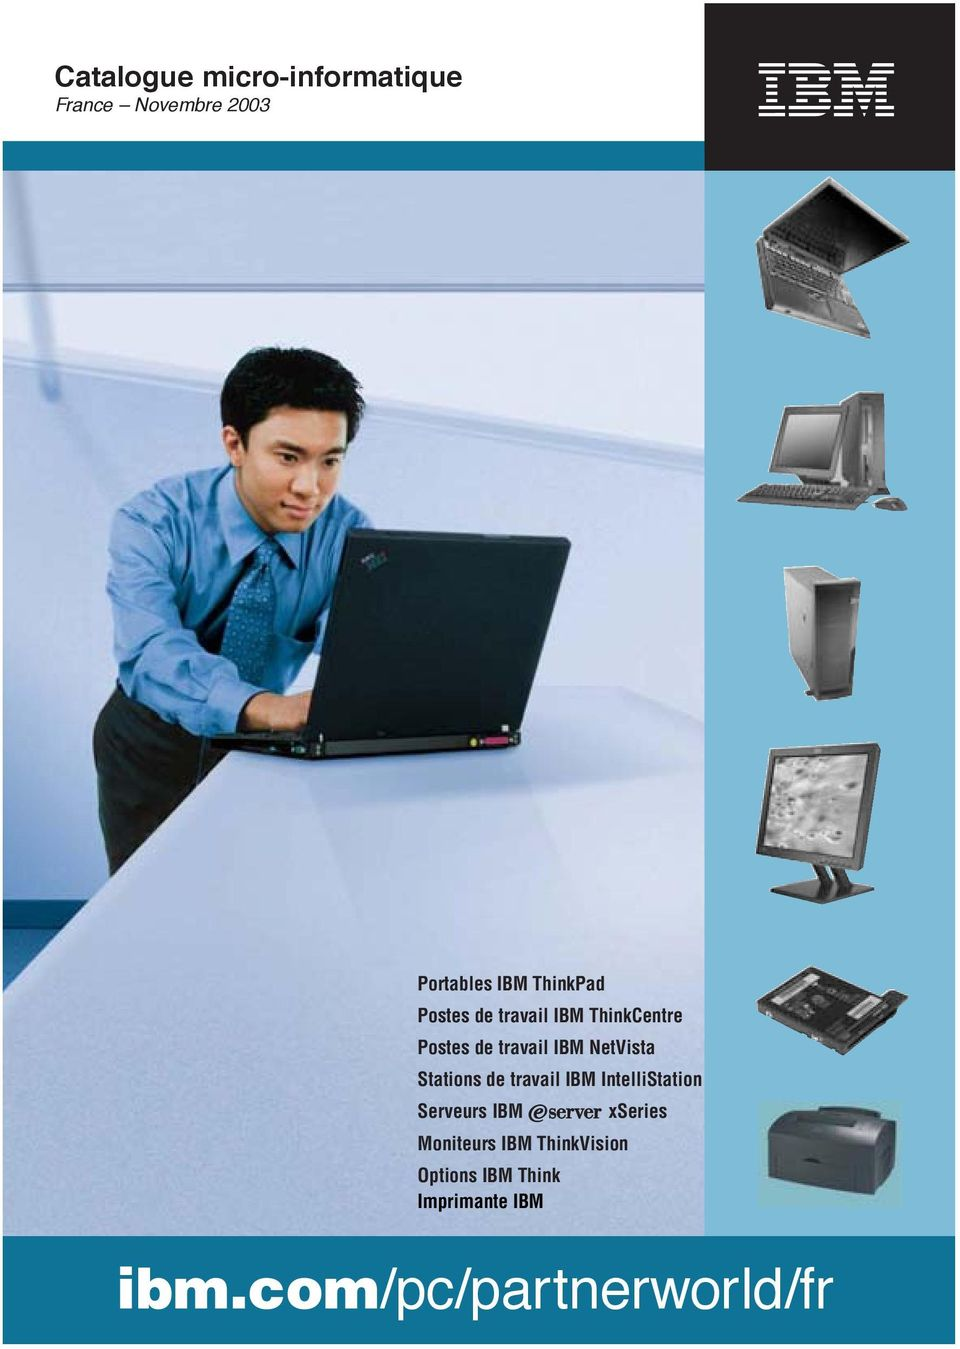 NetVista Stations de travail IBM IntelliStation Serveurs IBM ~ xseries